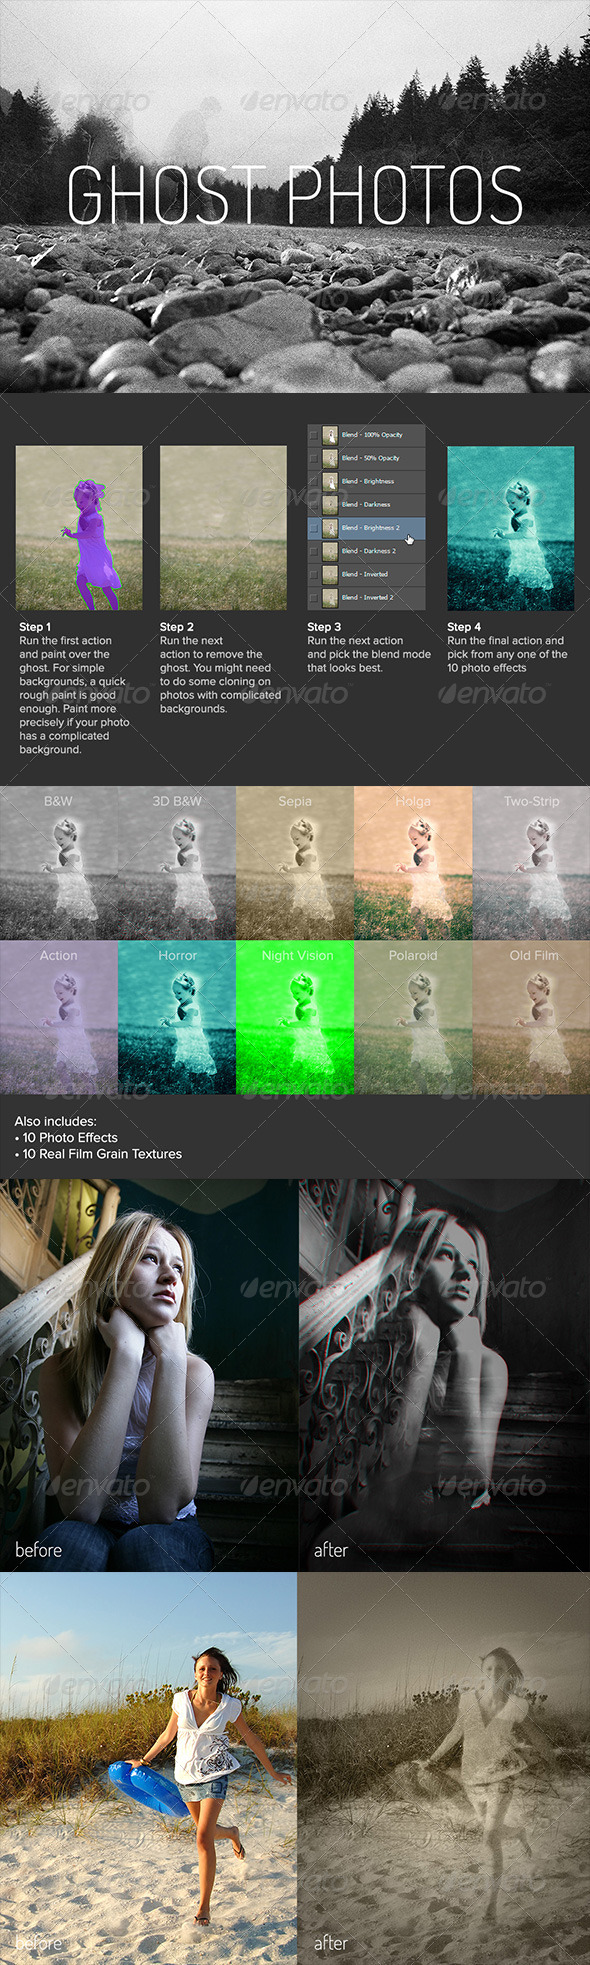 GraphicRiver Ghost Photos 5892649